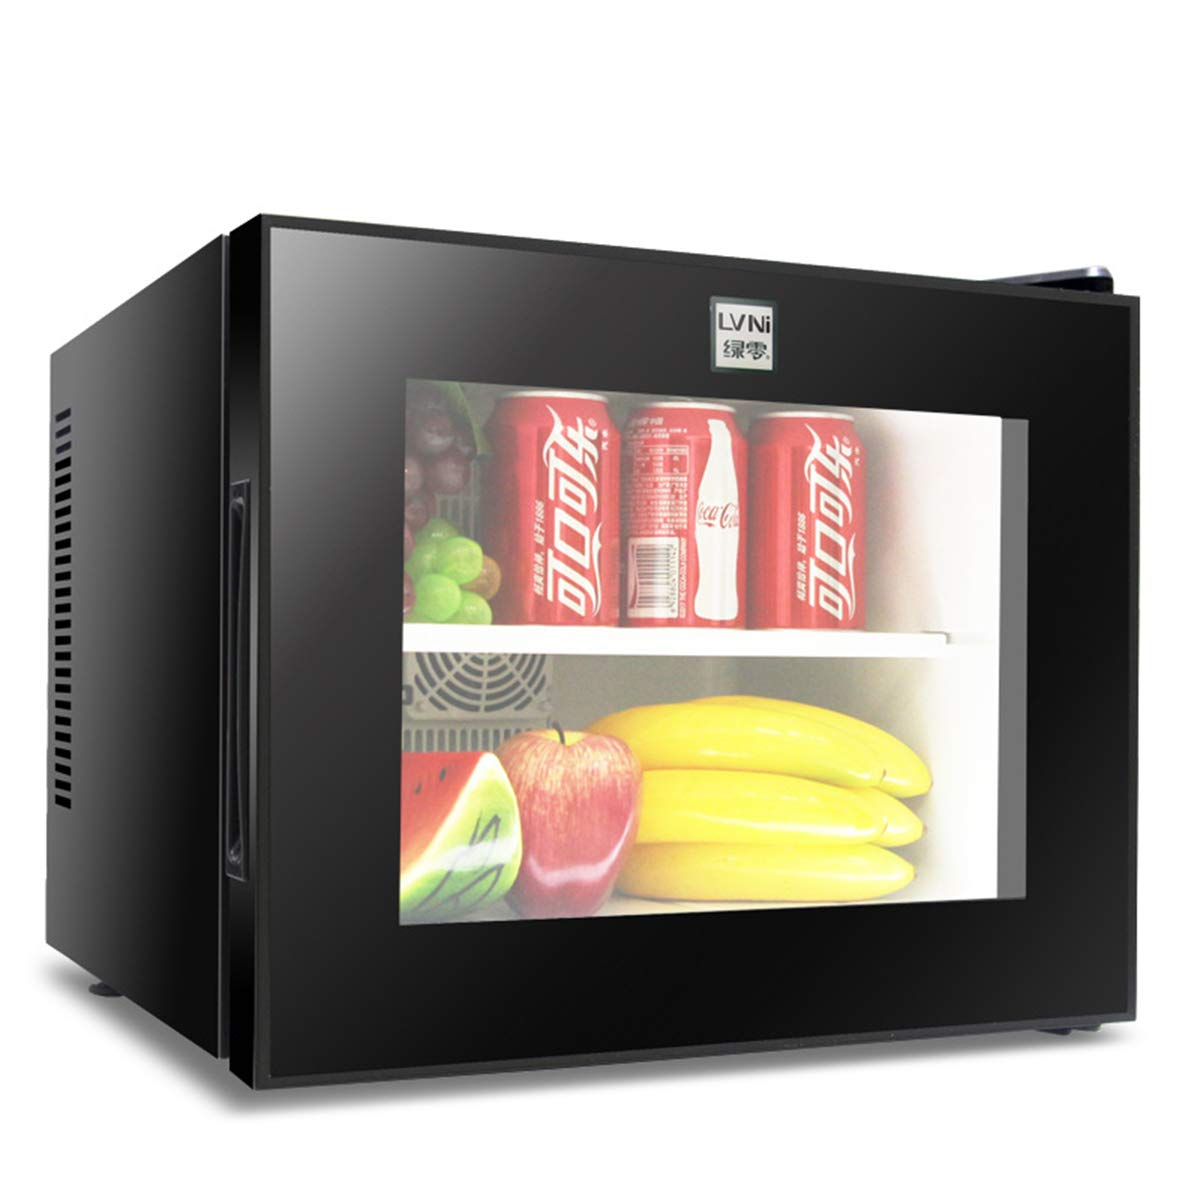 Dapang Mini Fridge with Tempering Glass Visual Door - Cooler and Warmer - Vertical Freezer & Compact Refrigerator - Includes Plugs for AC & DC Power Cords,20L